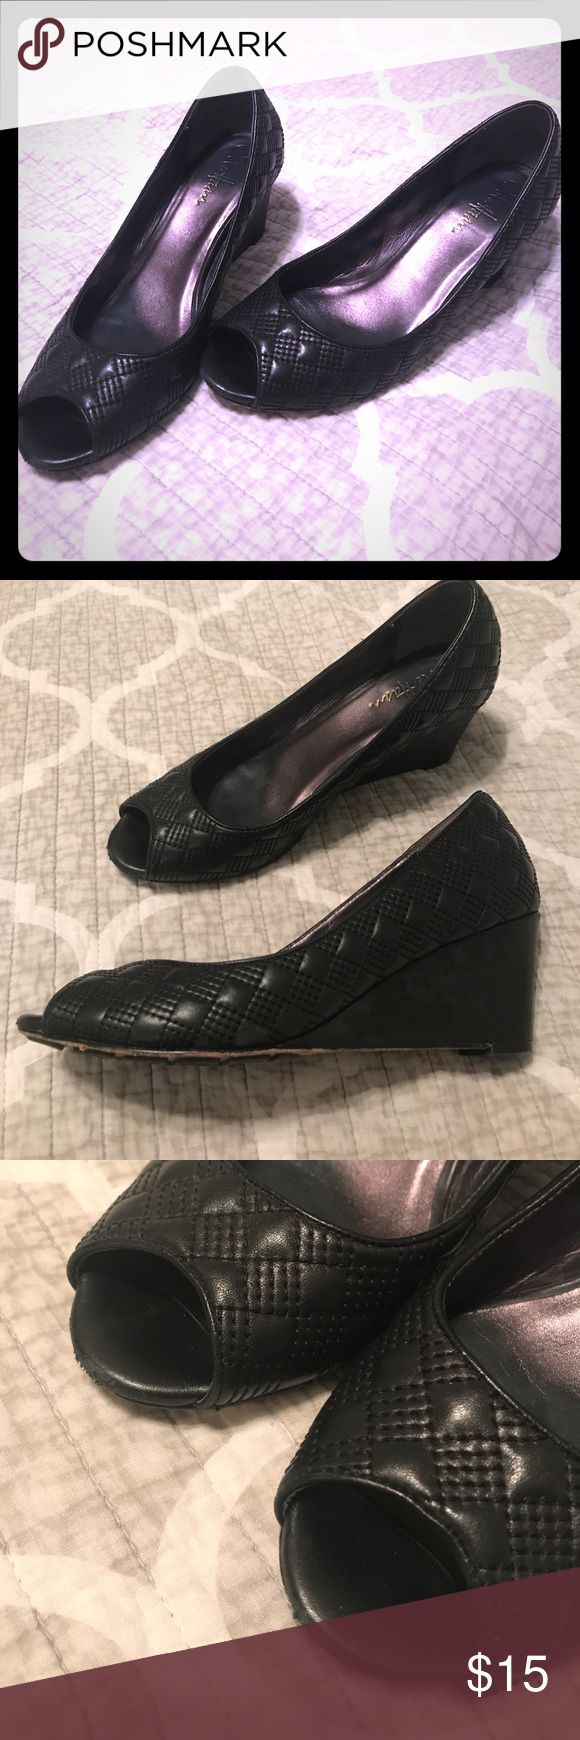 Cole Haan quilted Black peep toe wedges sz 8 Coke Haan quilted Black peep toe wedge heels. Stylish, professional, sophisticated, and comfortable! Cole Haan Shoes Wedges